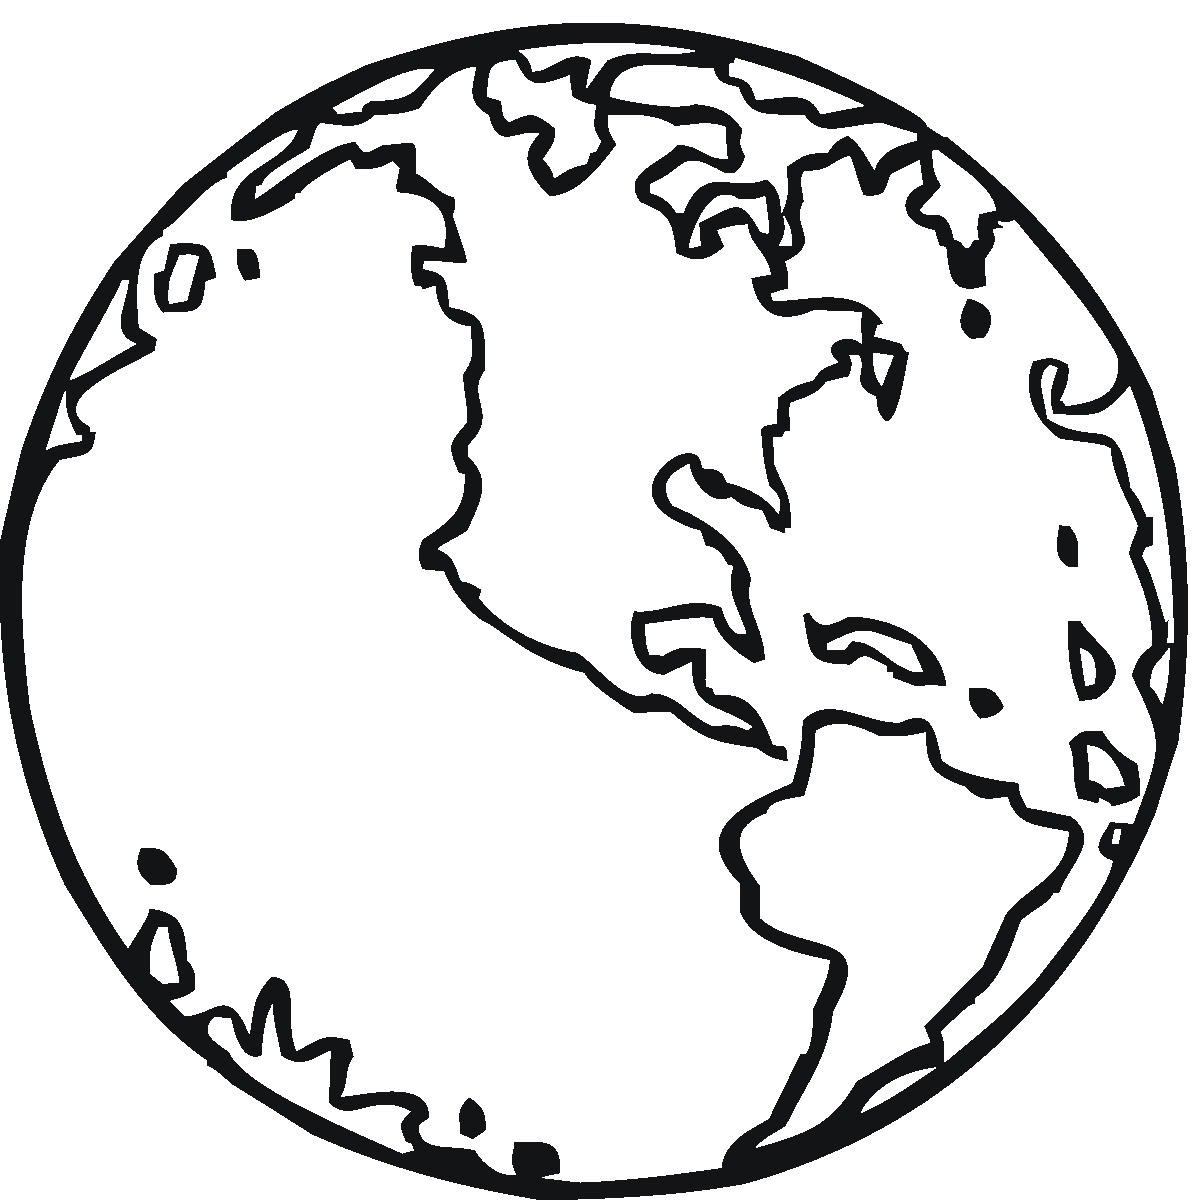 1200x1200 Free Printable Earth Coloring Pages For Kids Earth, Free